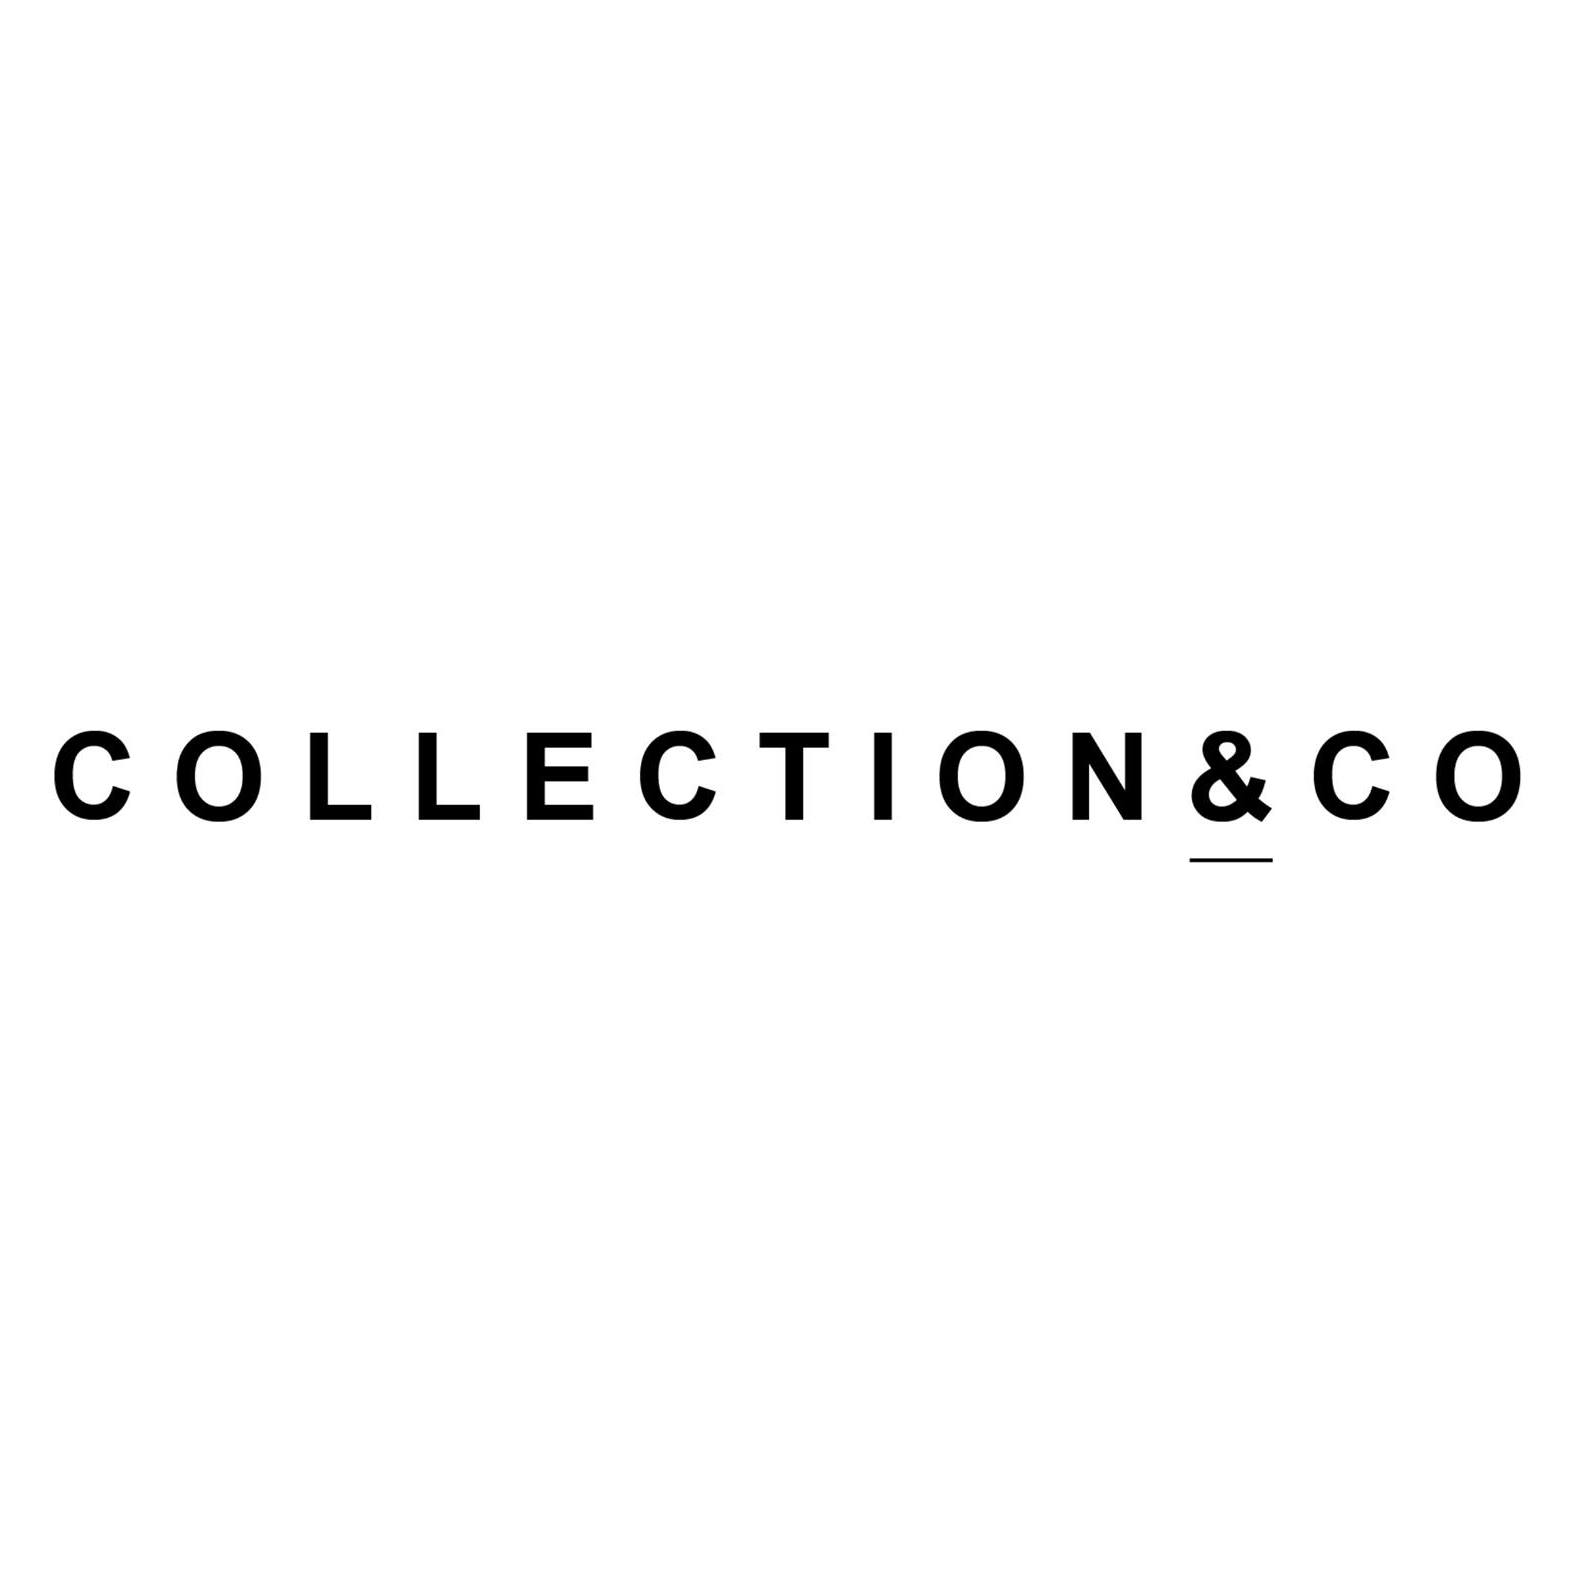 Collection & Co